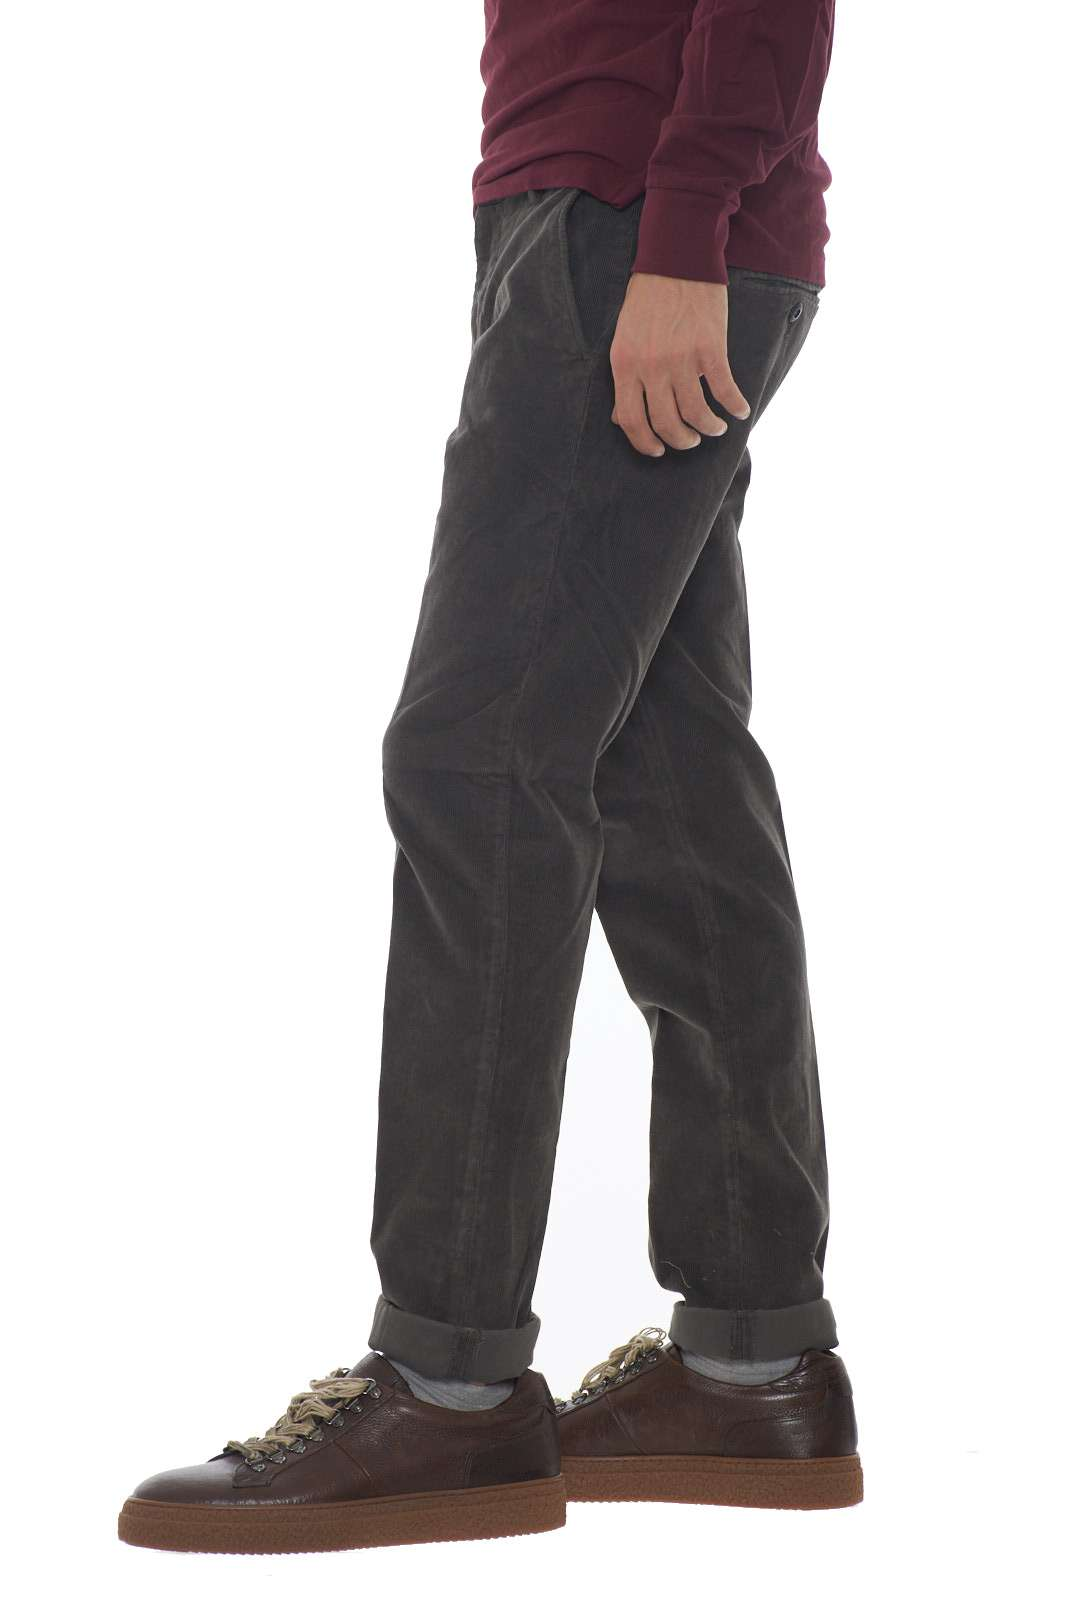 https://www.parmax.com/media/catalog/product/a/i/AI-outlet_parmax-pantaloni-uomo-Dondup-UP235%20VS0012U-B.jpg